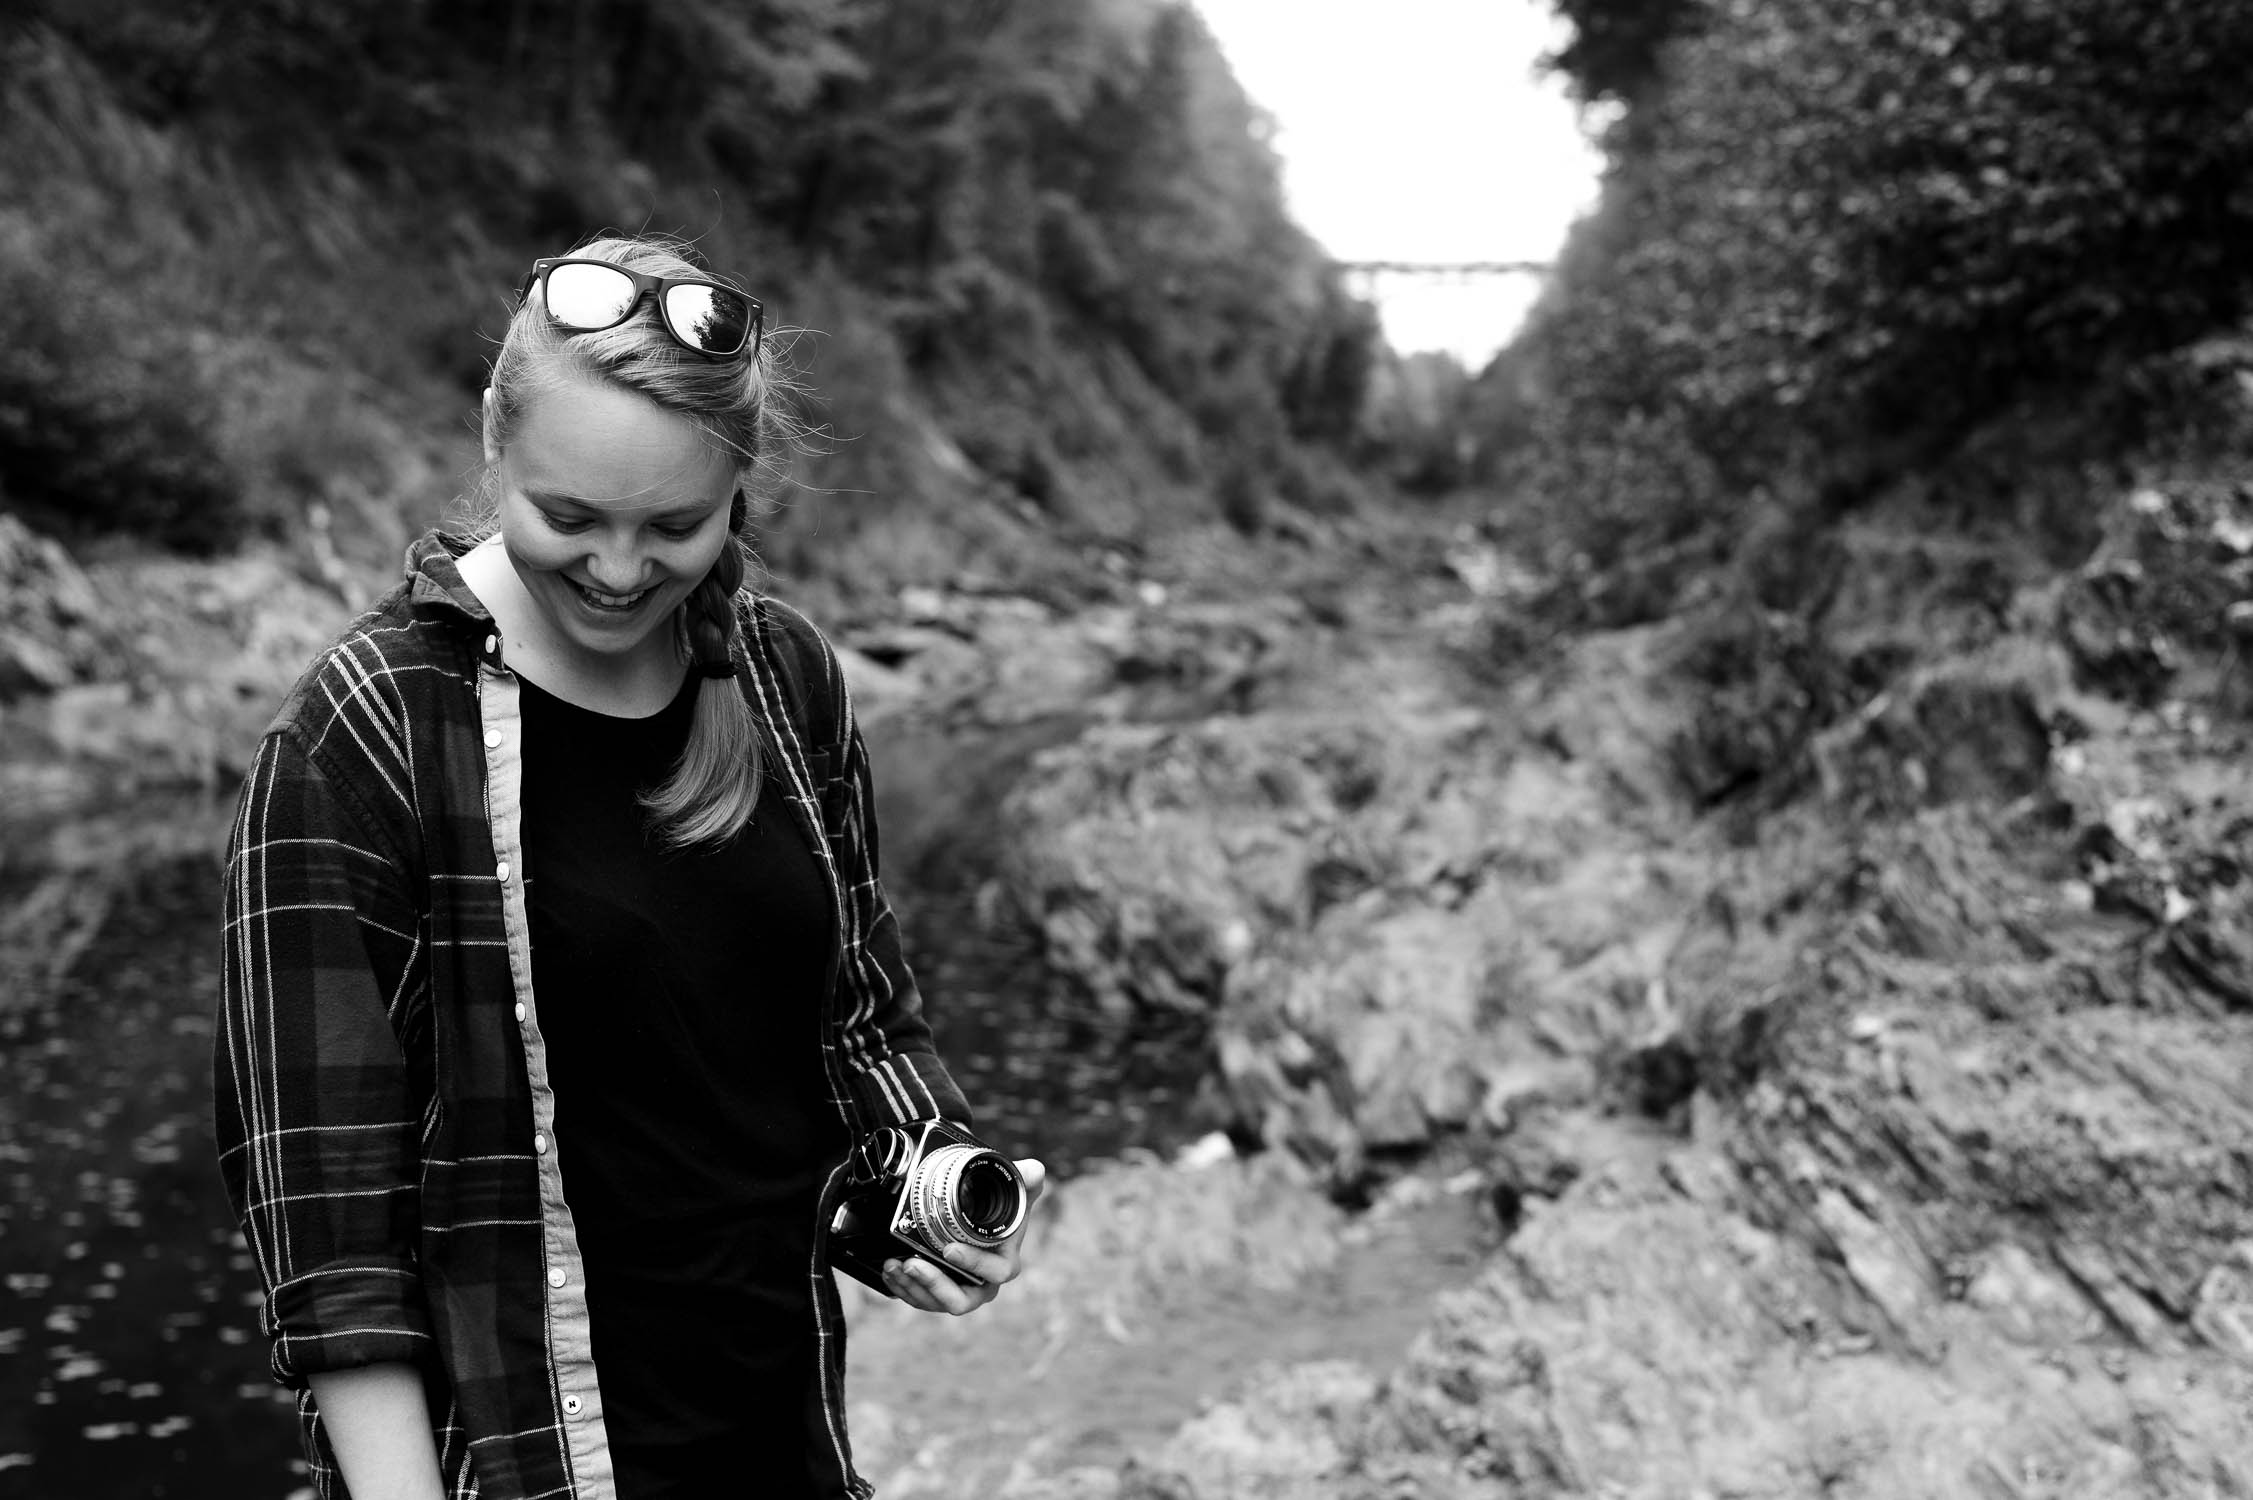 Amanda with a Hasselblad at Quechee Gorge